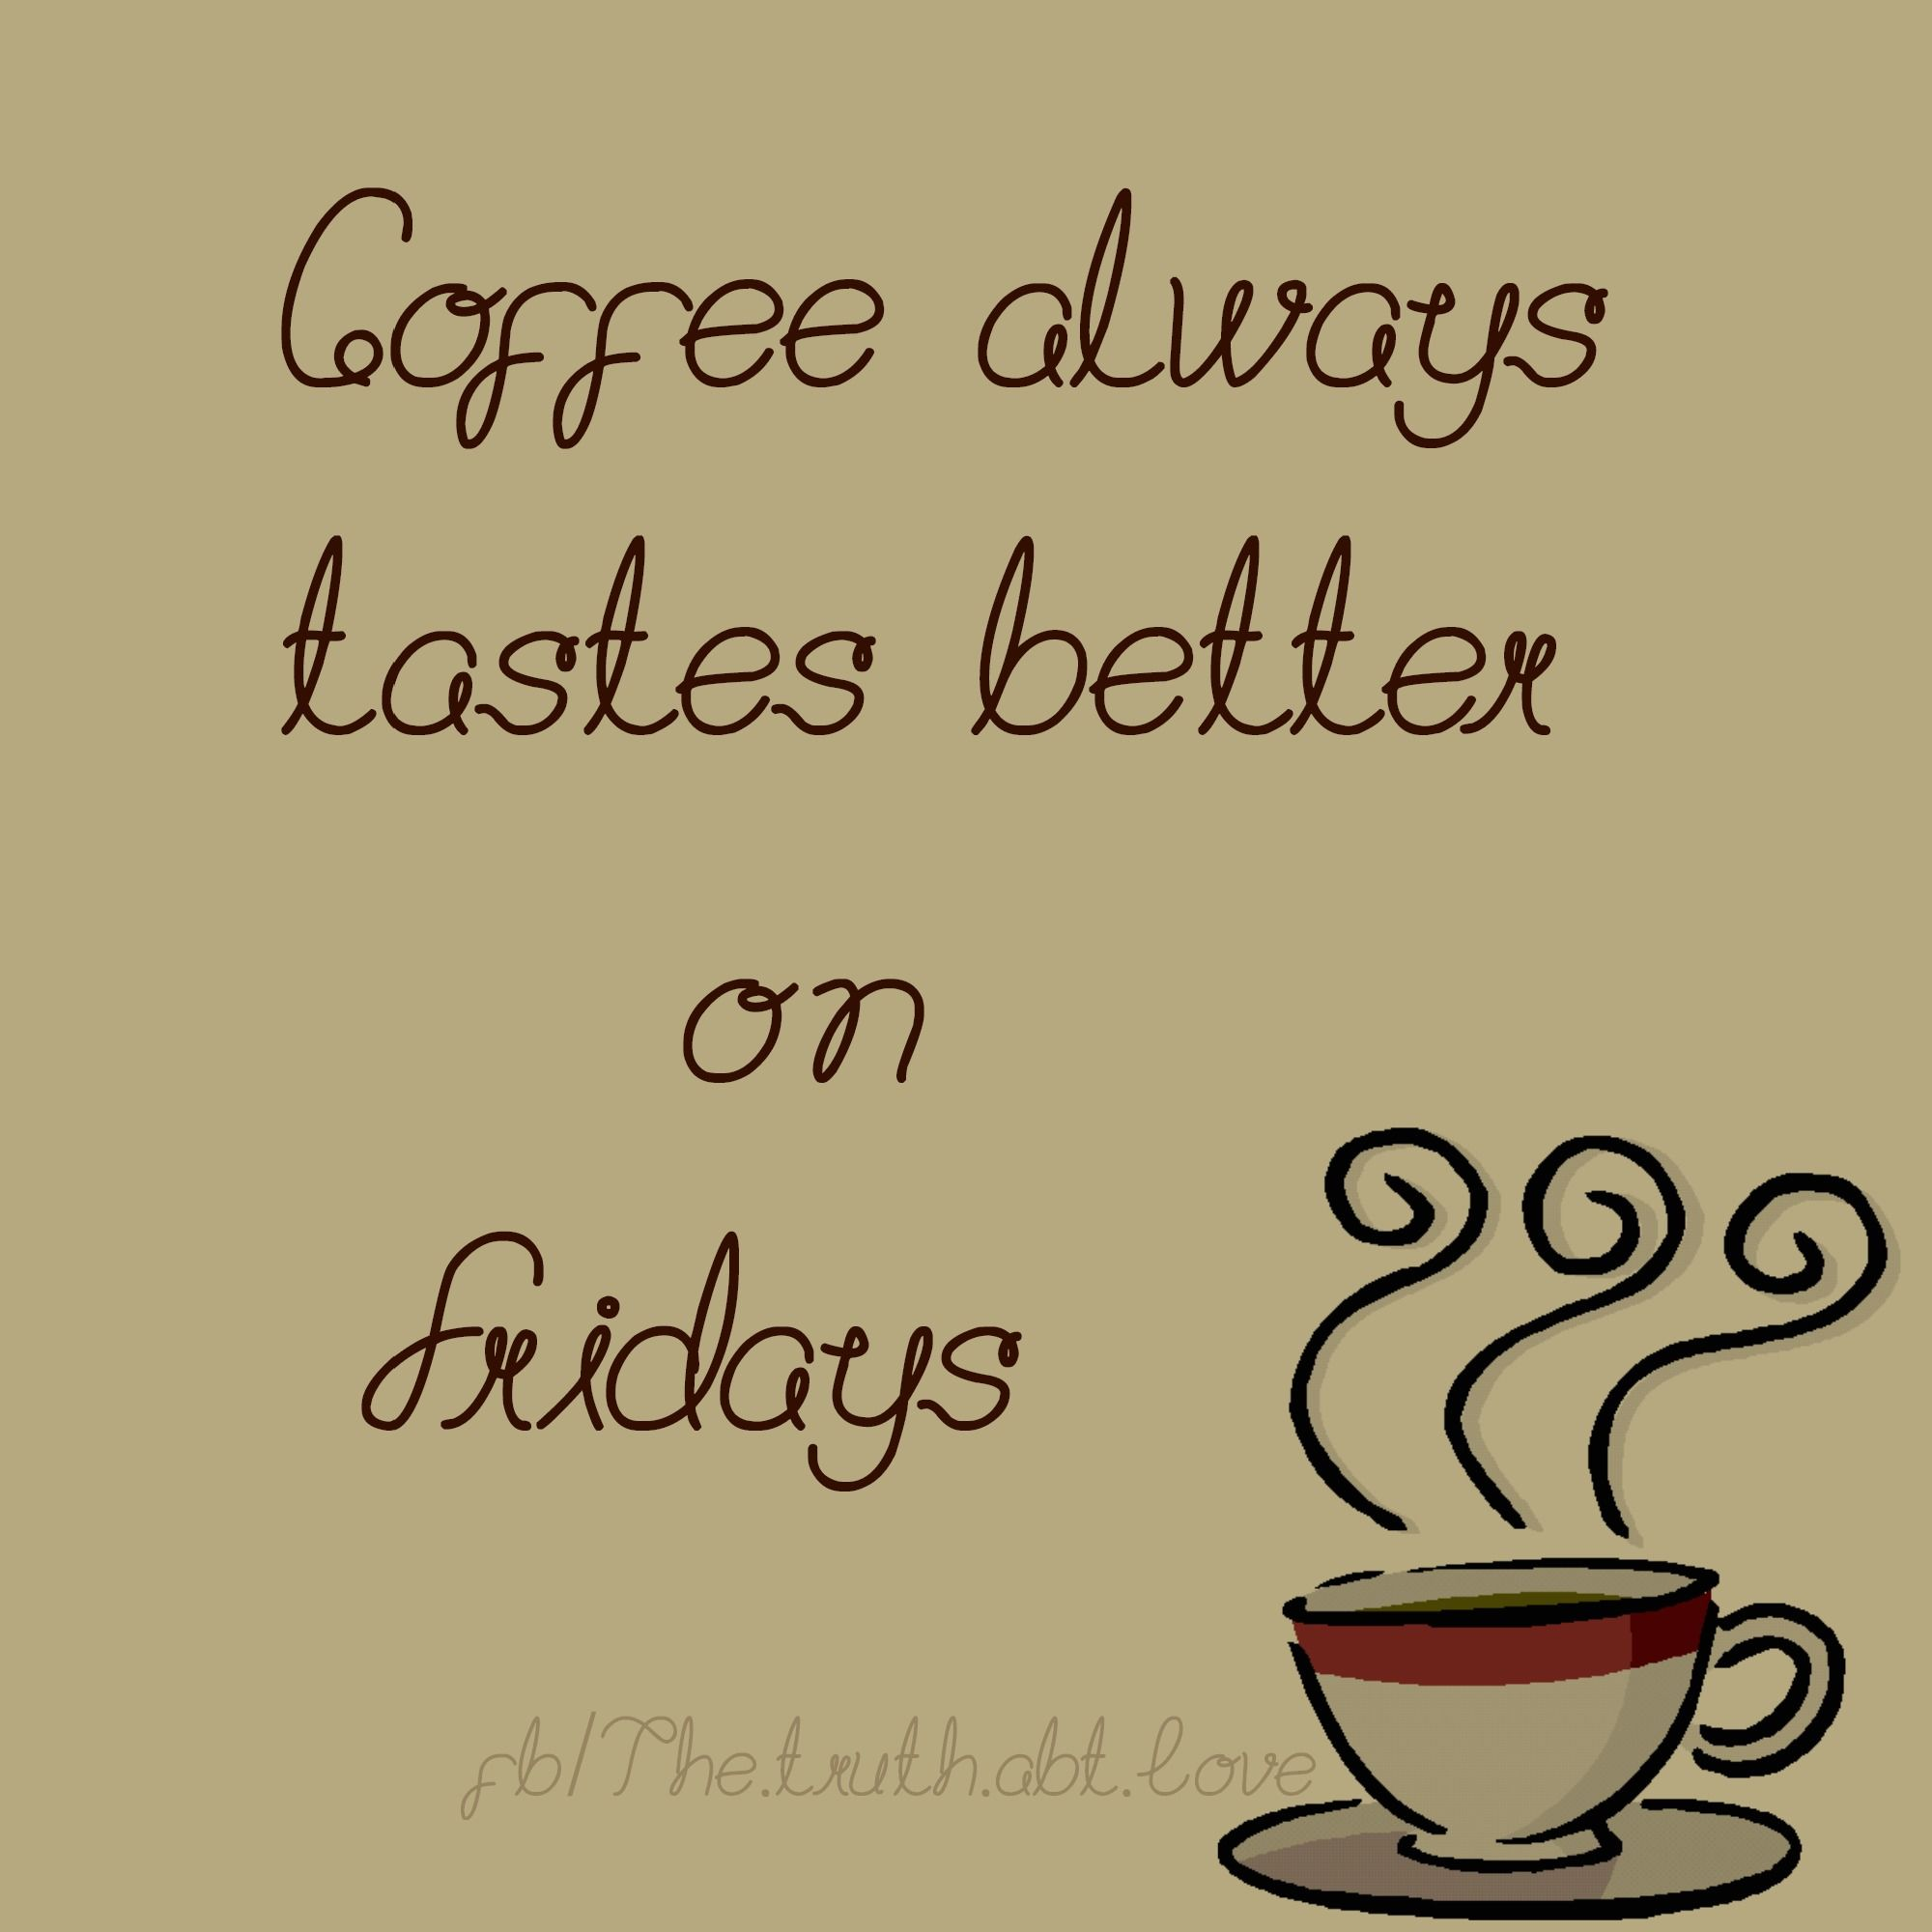 Friday Coffee Pictures, Photos, and Images for Facebook ...